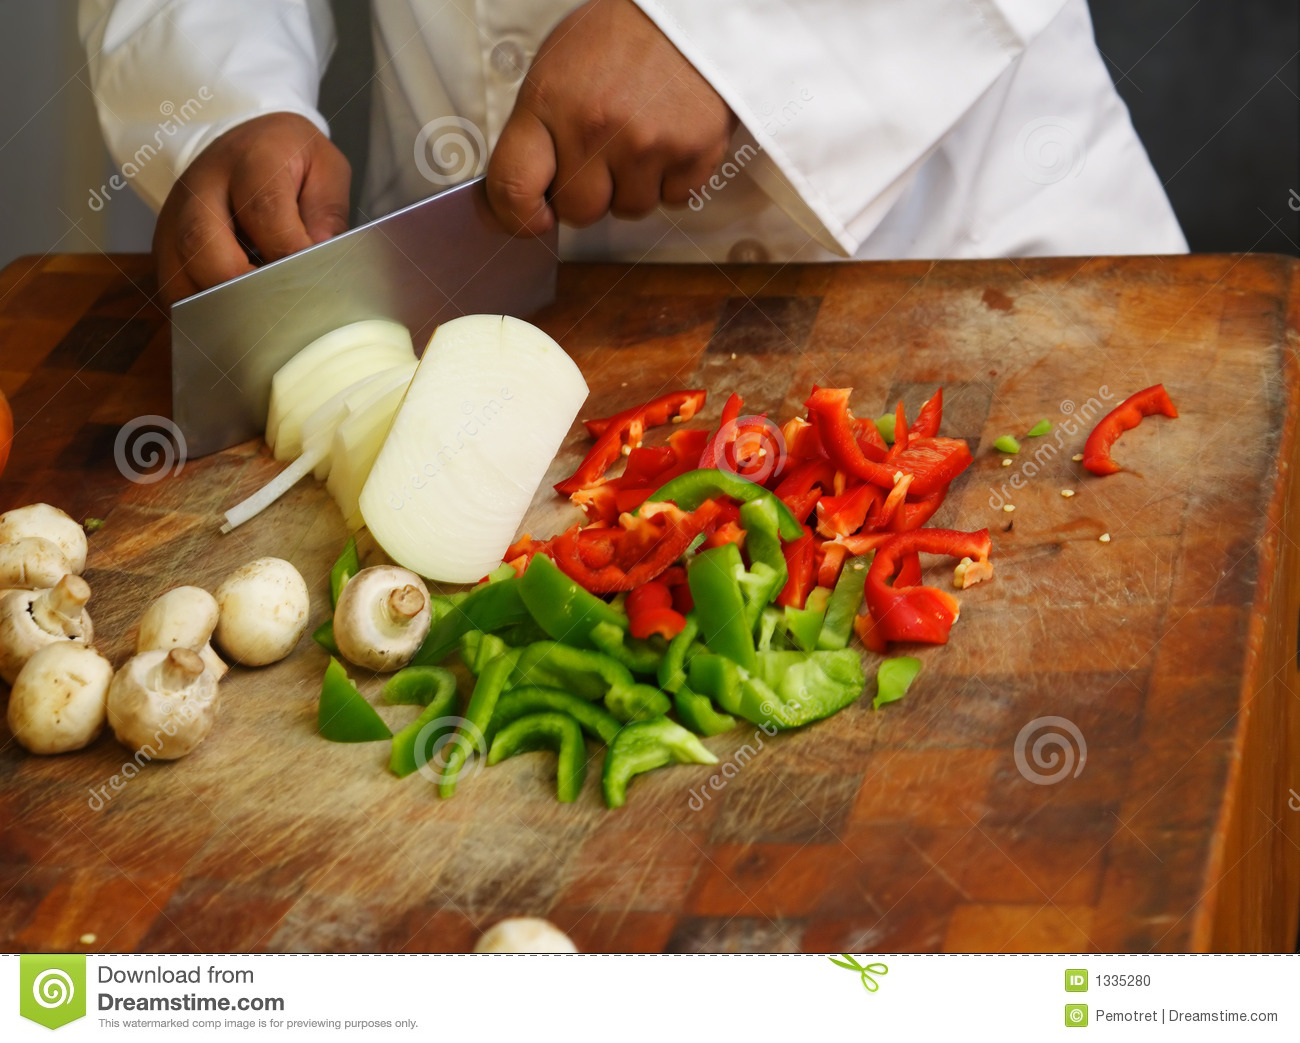 Chef Cutting Vegetables Close Up Stock Photo - Image: 1335280